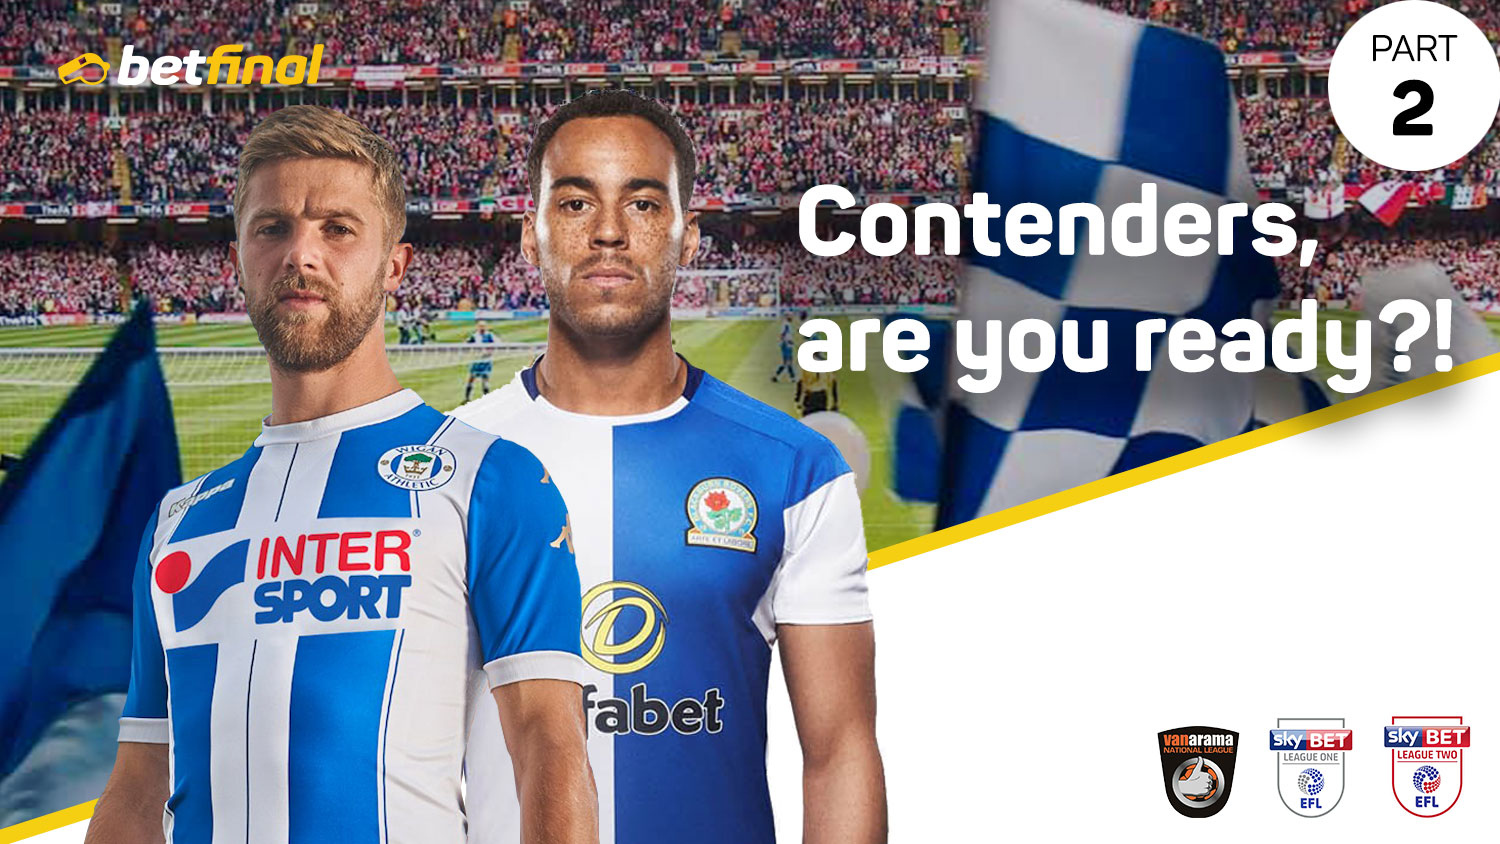 Premier League and Football League Relegation, Promotion and Play-offs: Contenders, Are You Ready? Part Two